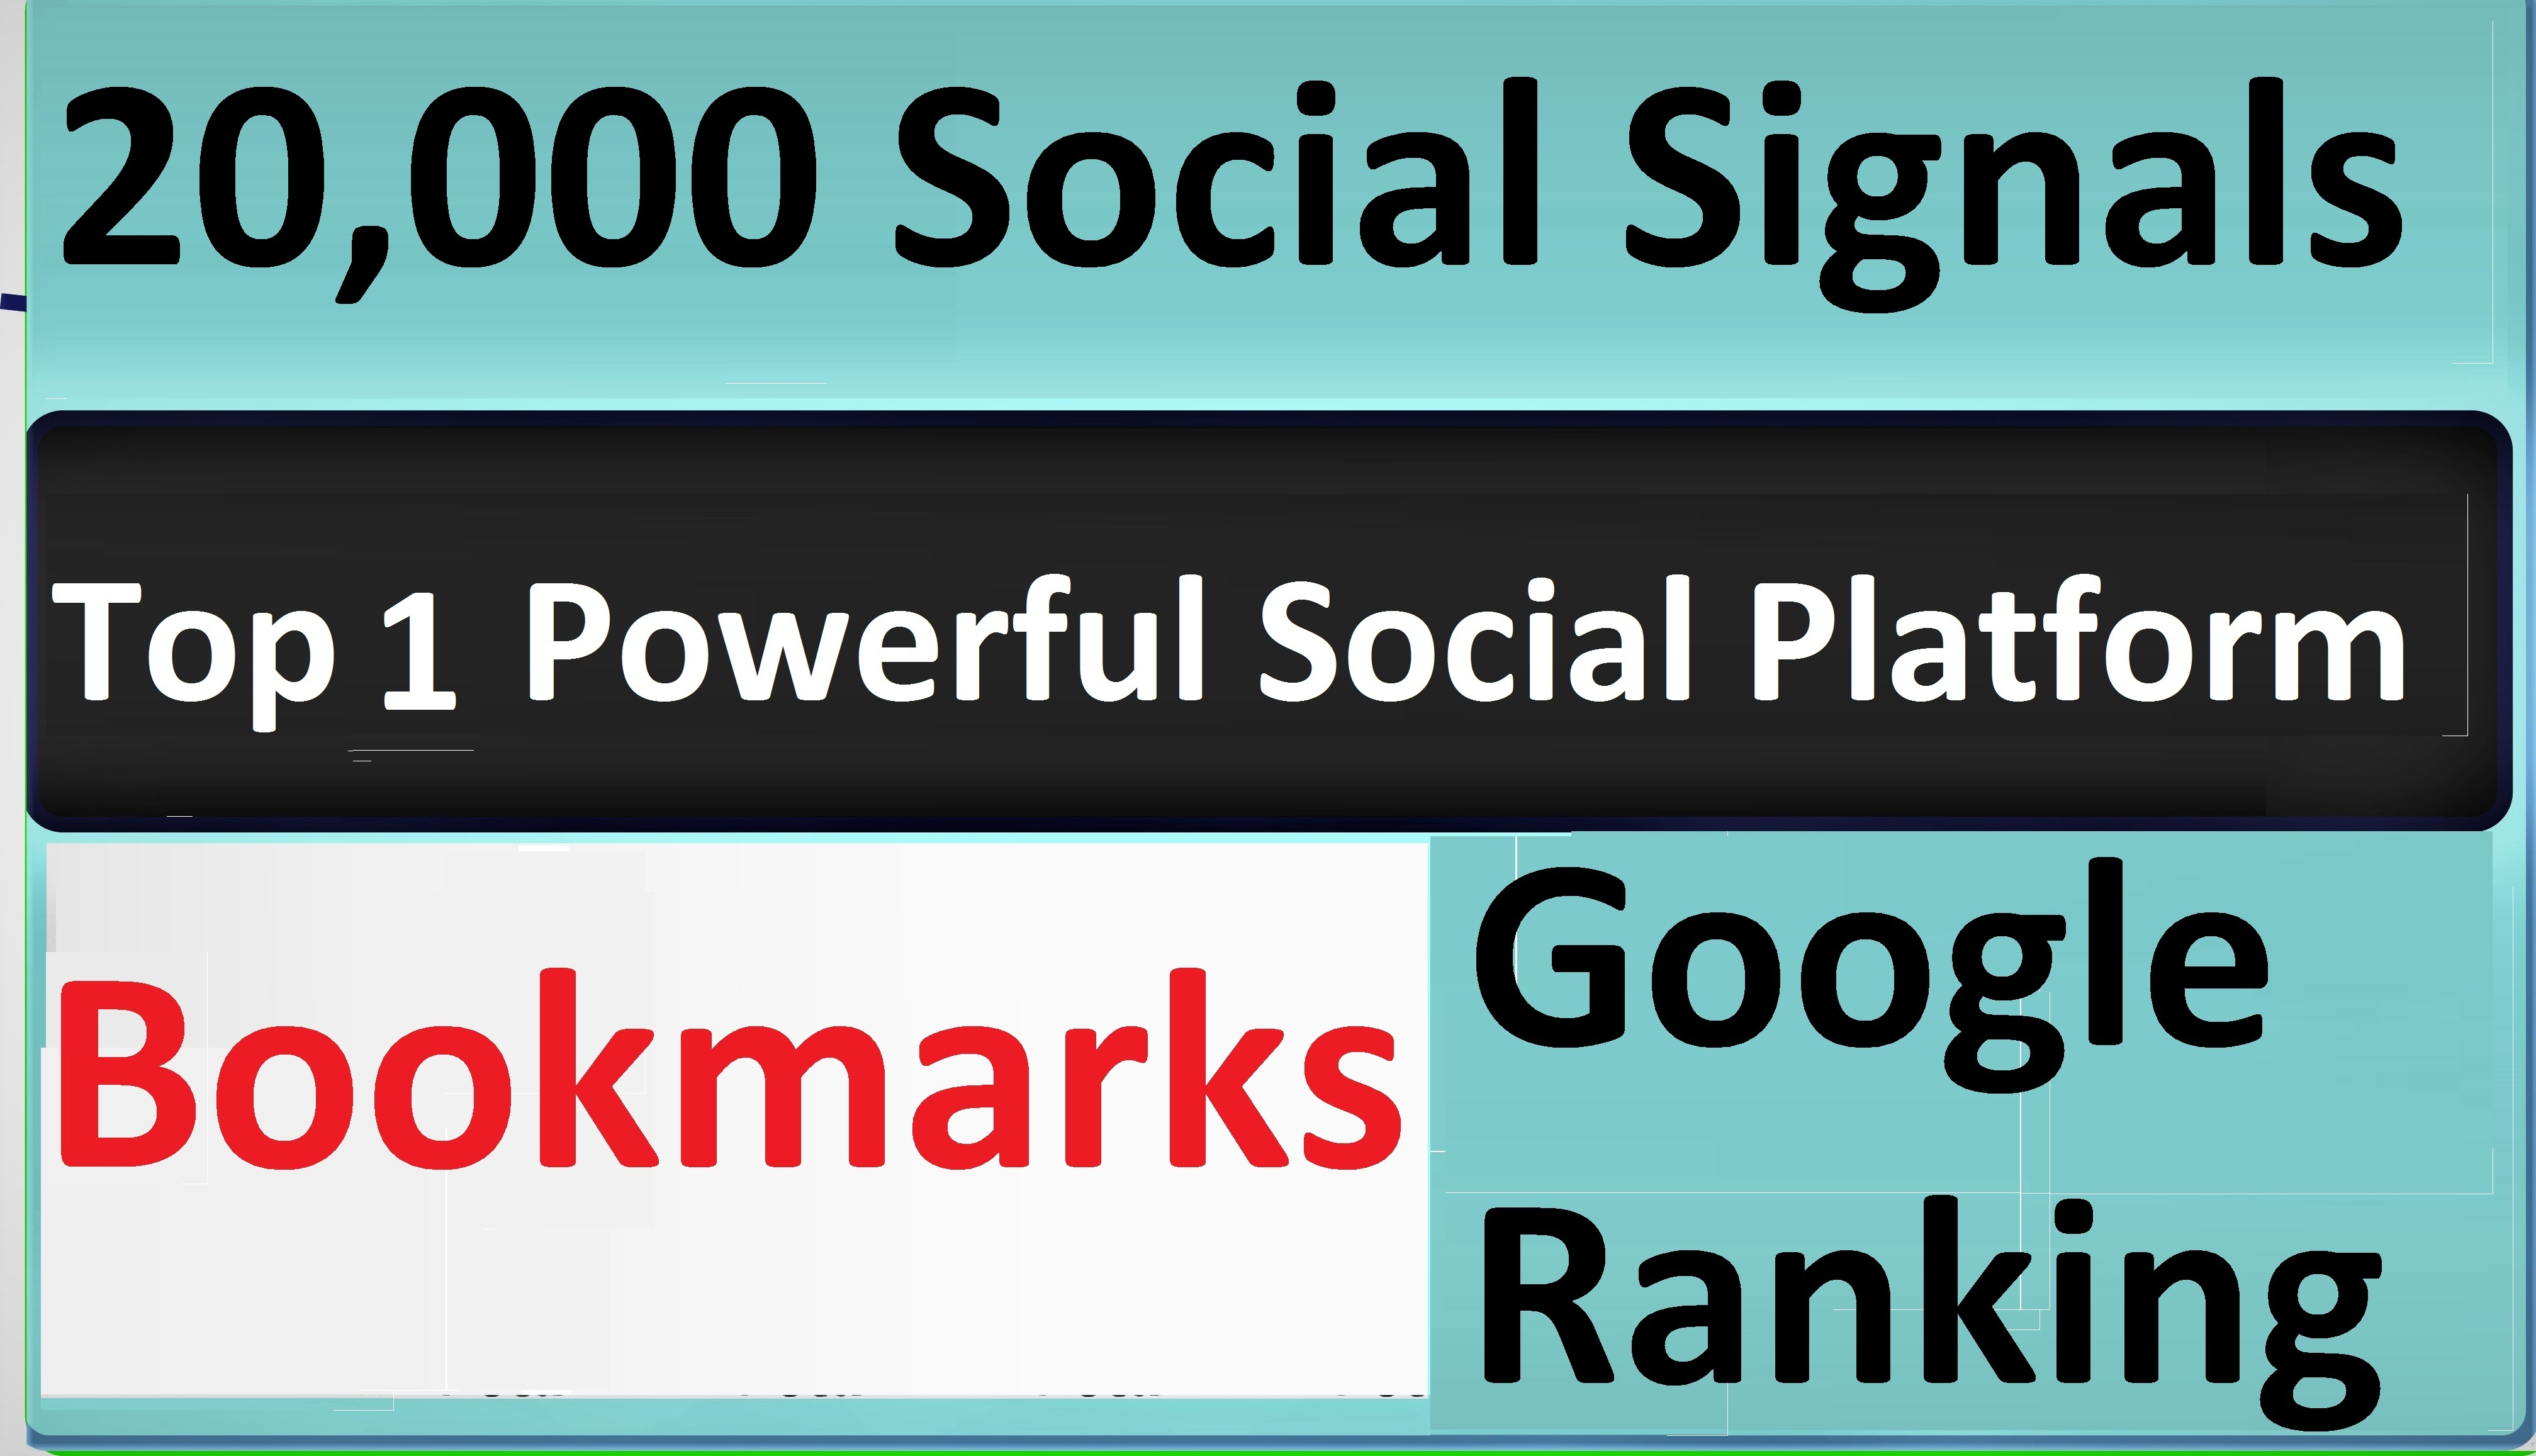 Give Top 1 Powerful Social Platform 20,000 PR9 SEO Social Signals Share Bookmarks Important Google